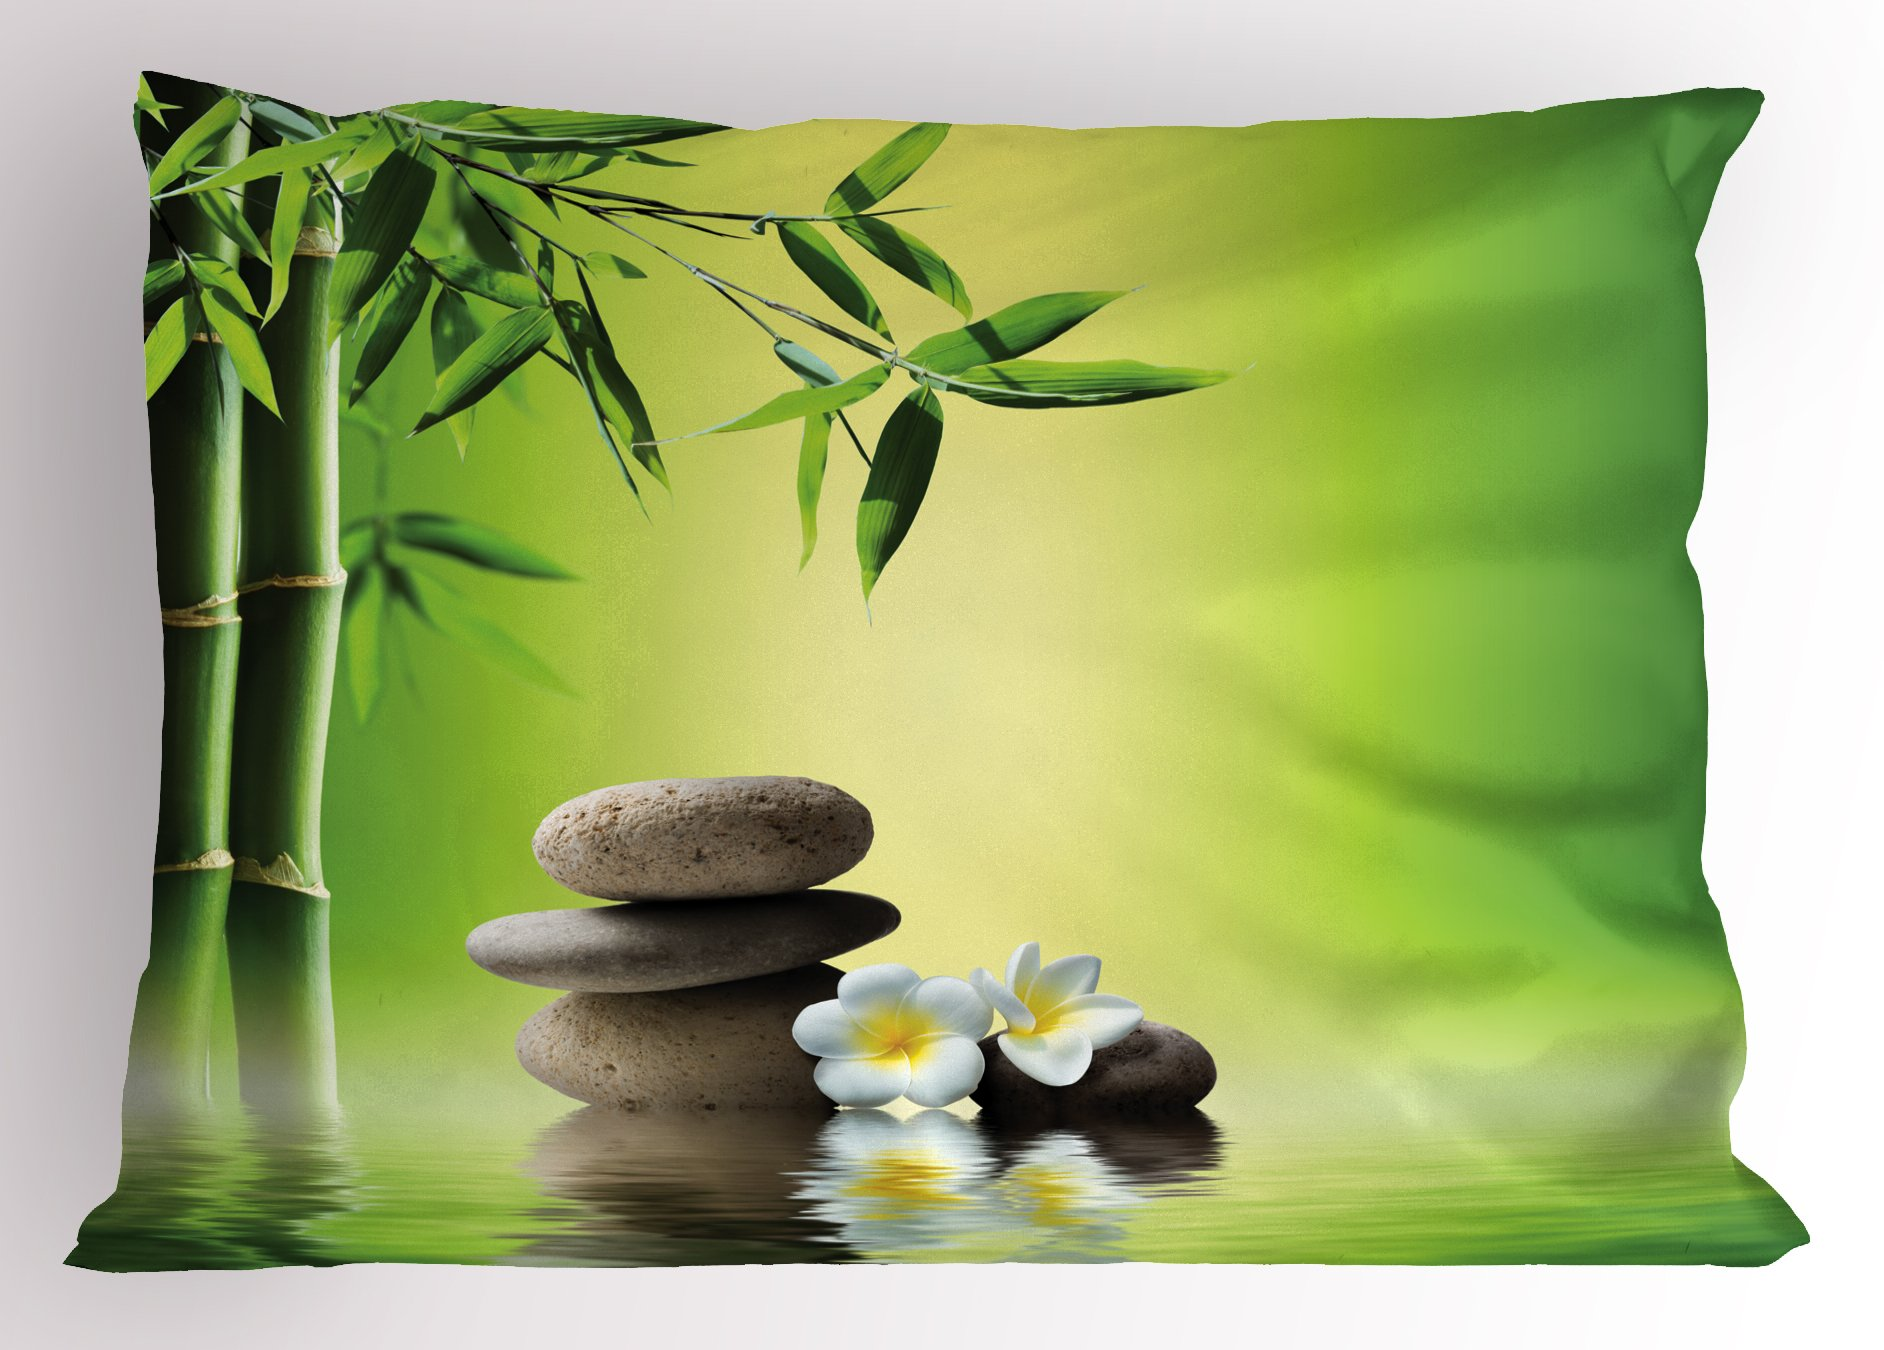 Ambesonne Spa Decor Pillow Sham, Japanese Therapy Relaxation Stones Frangipani Flowers Bamboo Tree Healthcare, Decorative Standard Queen Size Printed Pillowcase, 30 X 20 inches, Green Yellow